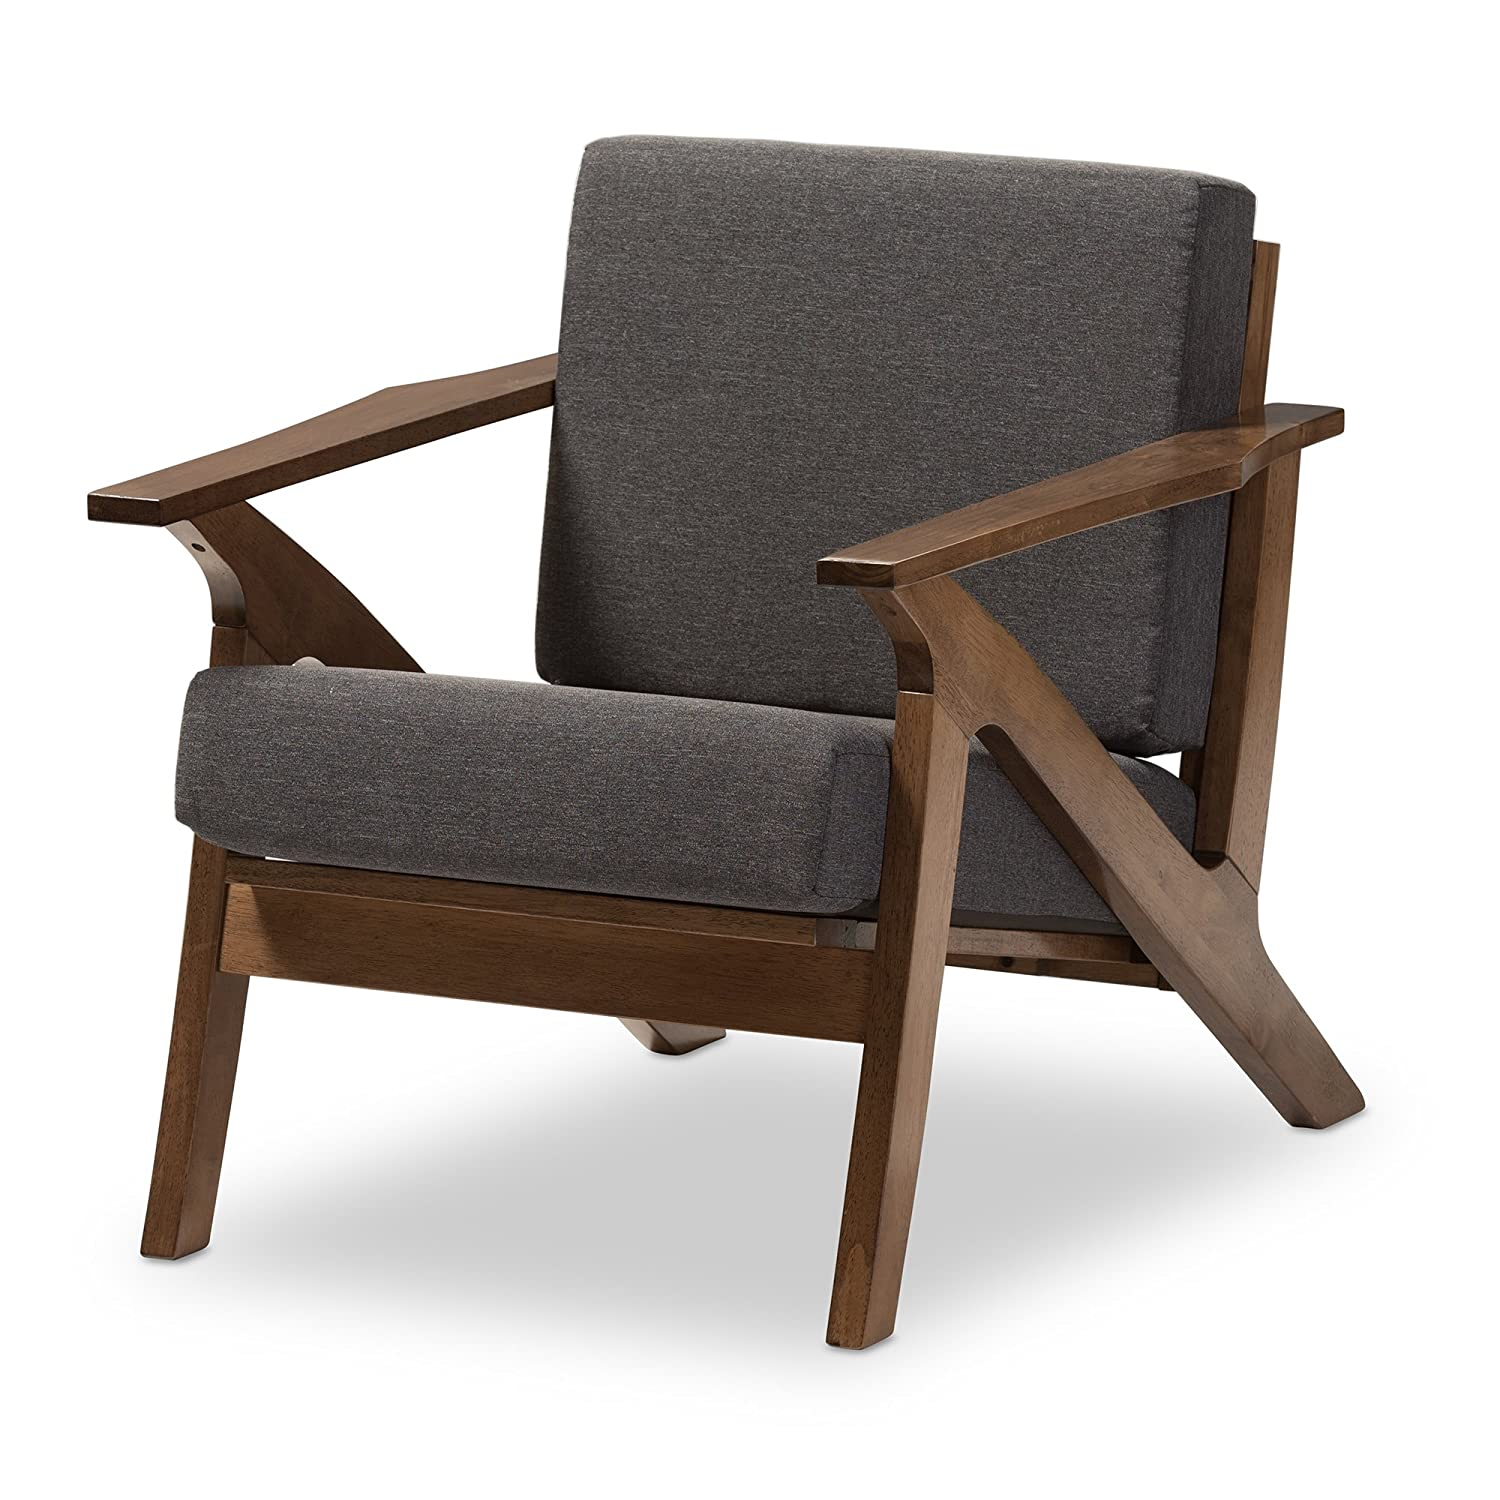 Stupendous Baxton Studio Genie Mid Century Modern Wood Grey Fabric Living Room 1 Seater Lounge Chair Walnut Squirreltailoven Fun Painted Chair Ideas Images Squirreltailovenorg